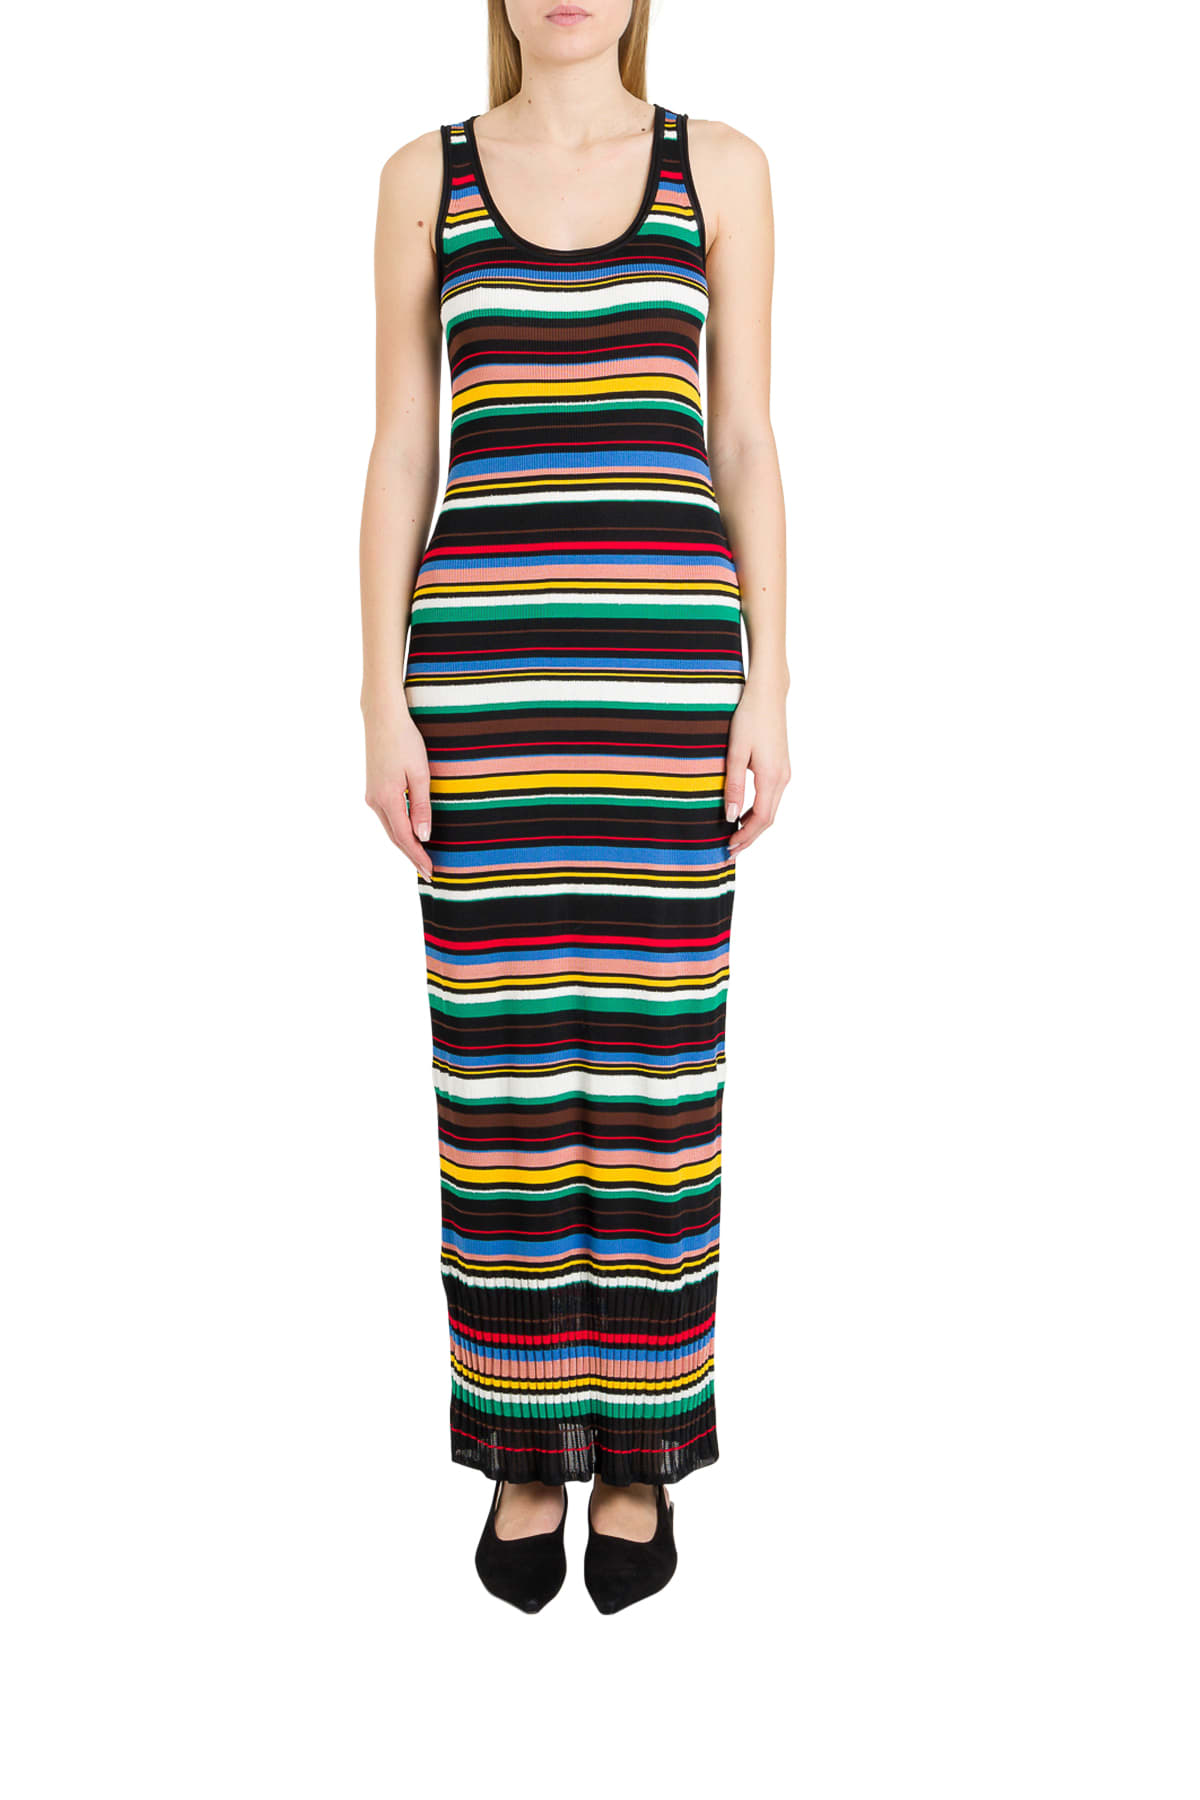 Buy M Missoni Ribbed Knit Dress With Multicolor Striped Pattern online, shop M Missoni with free shipping